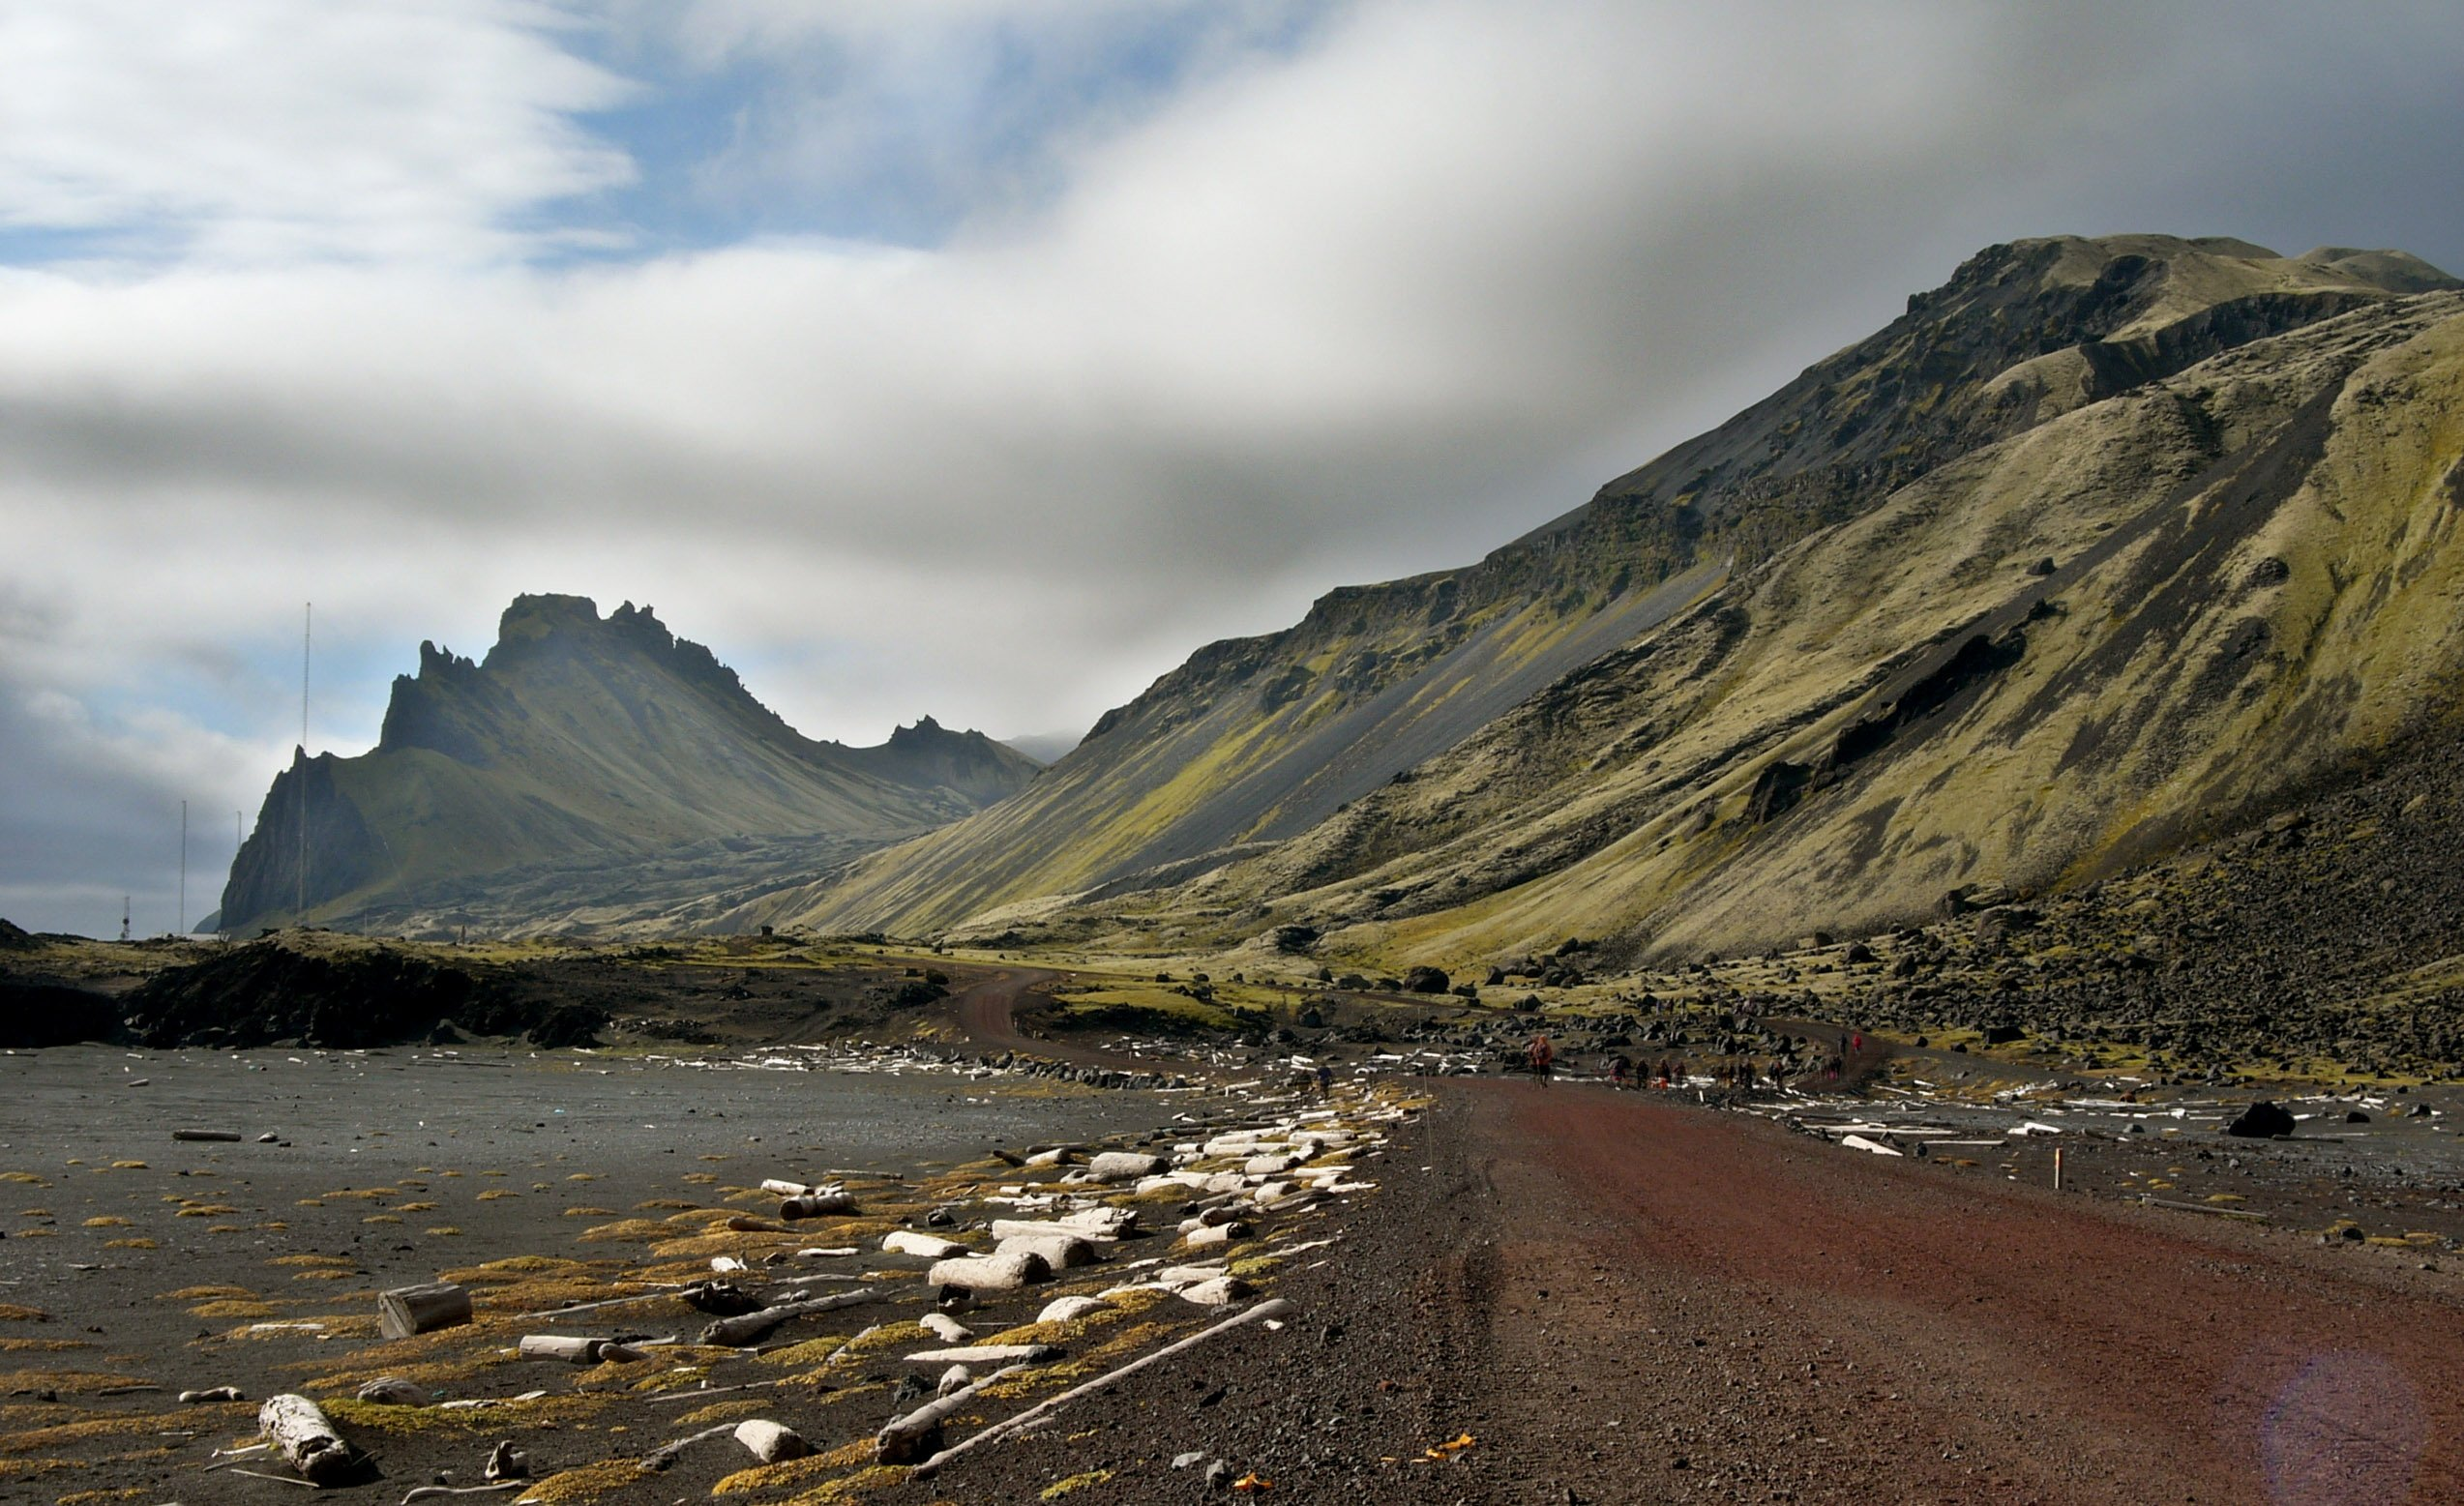 A road along the west coast of Jan Mayen. The wood comes from Siberia, transported by sea ice via the Transpolar drift through the Arctic Ocean and finally with the East Greenland current southward until stranded ashore the island. (Hannes Grobe / Alfred Wegener Institute)